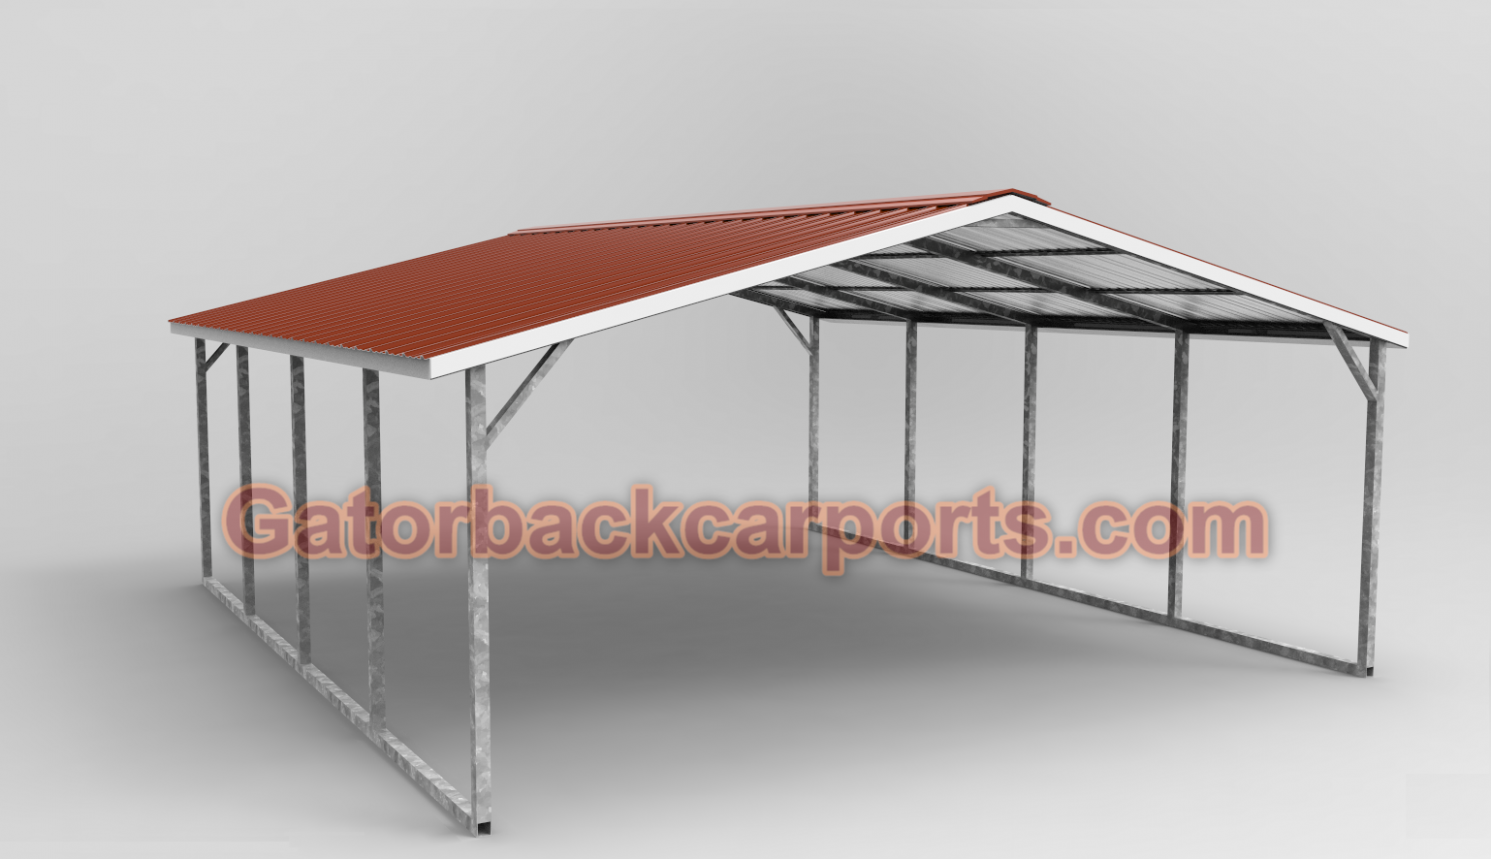 Decorating: Side Wall Carport Canopy In White For Outdoor ..